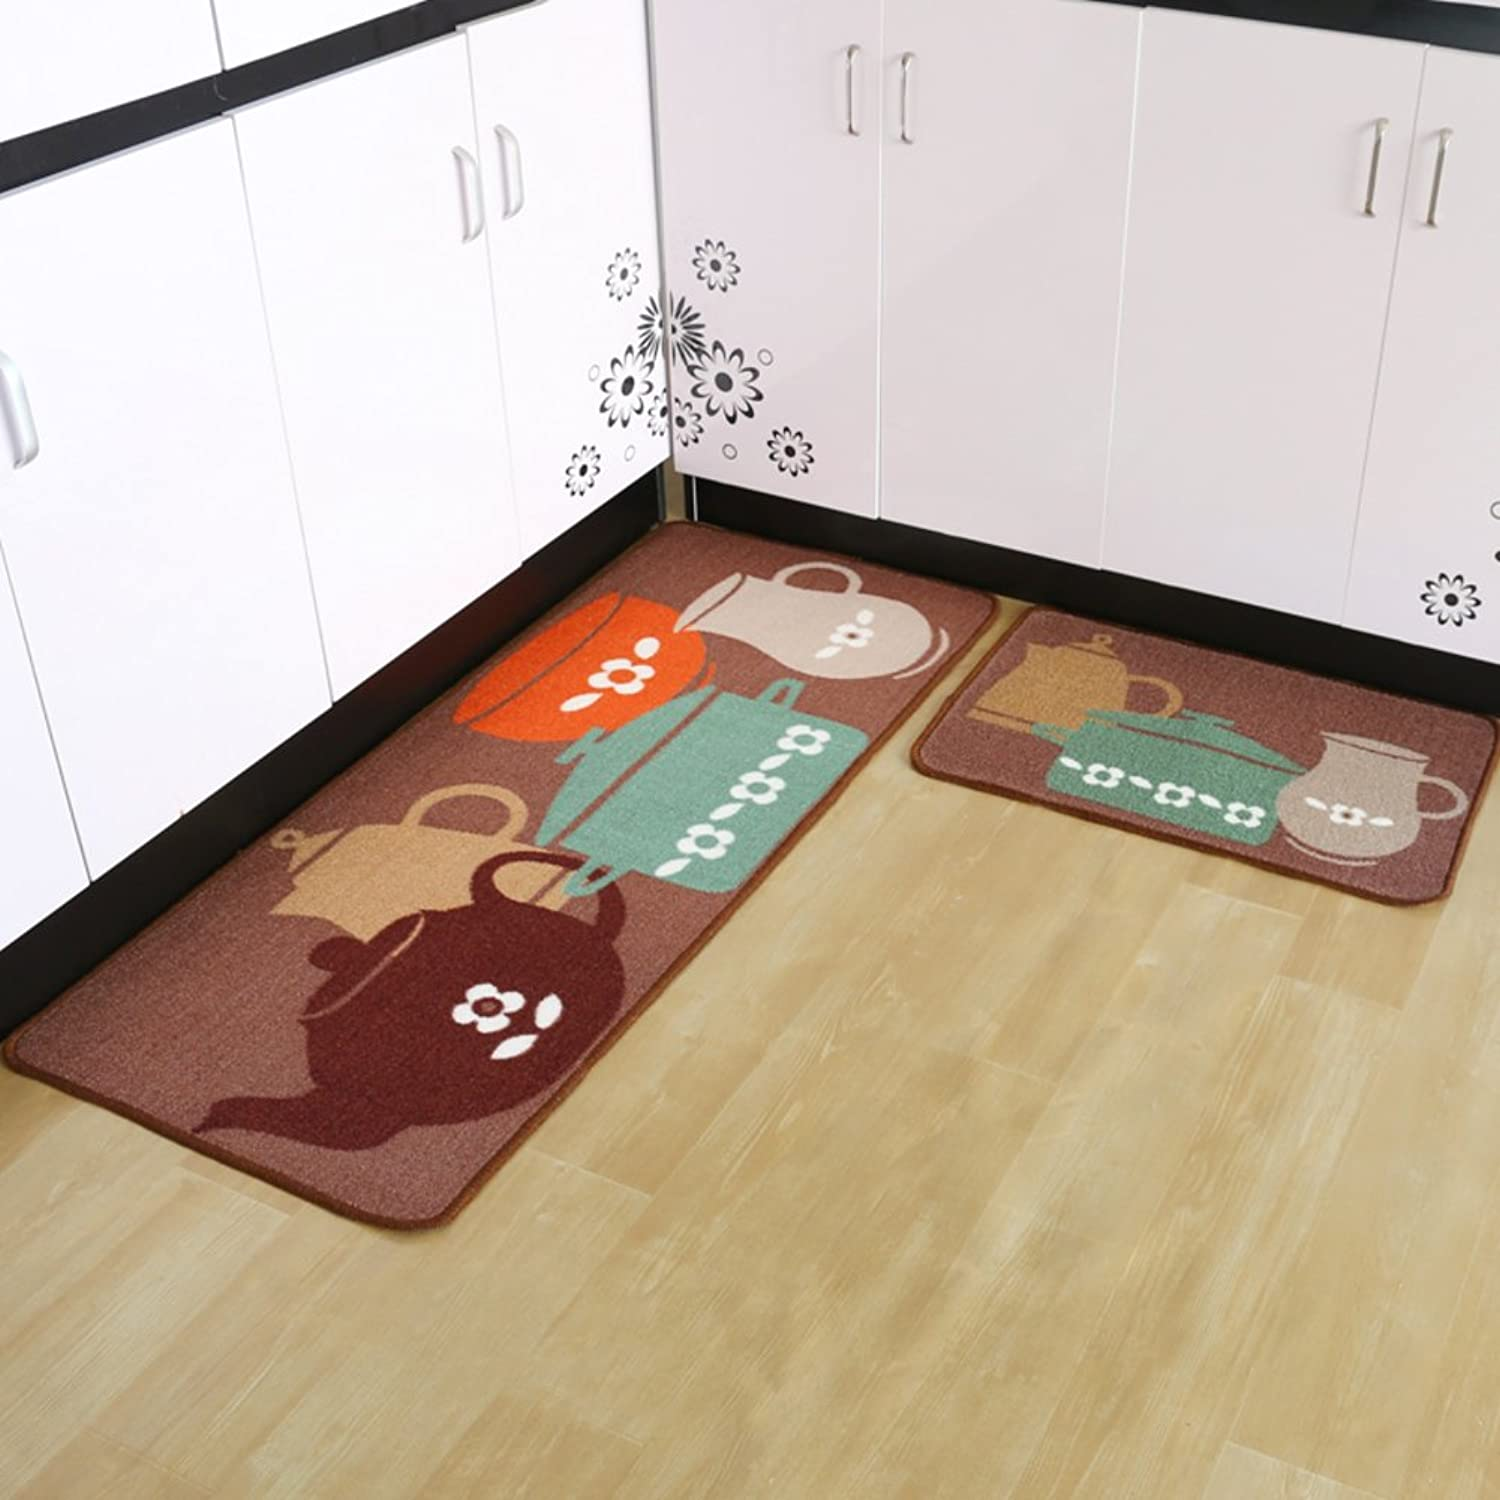 The kitchen floor mat Strip pad The door Bathroom non-slip Water-absorbing mats Doormat-A 50x180cm(20x71inch)